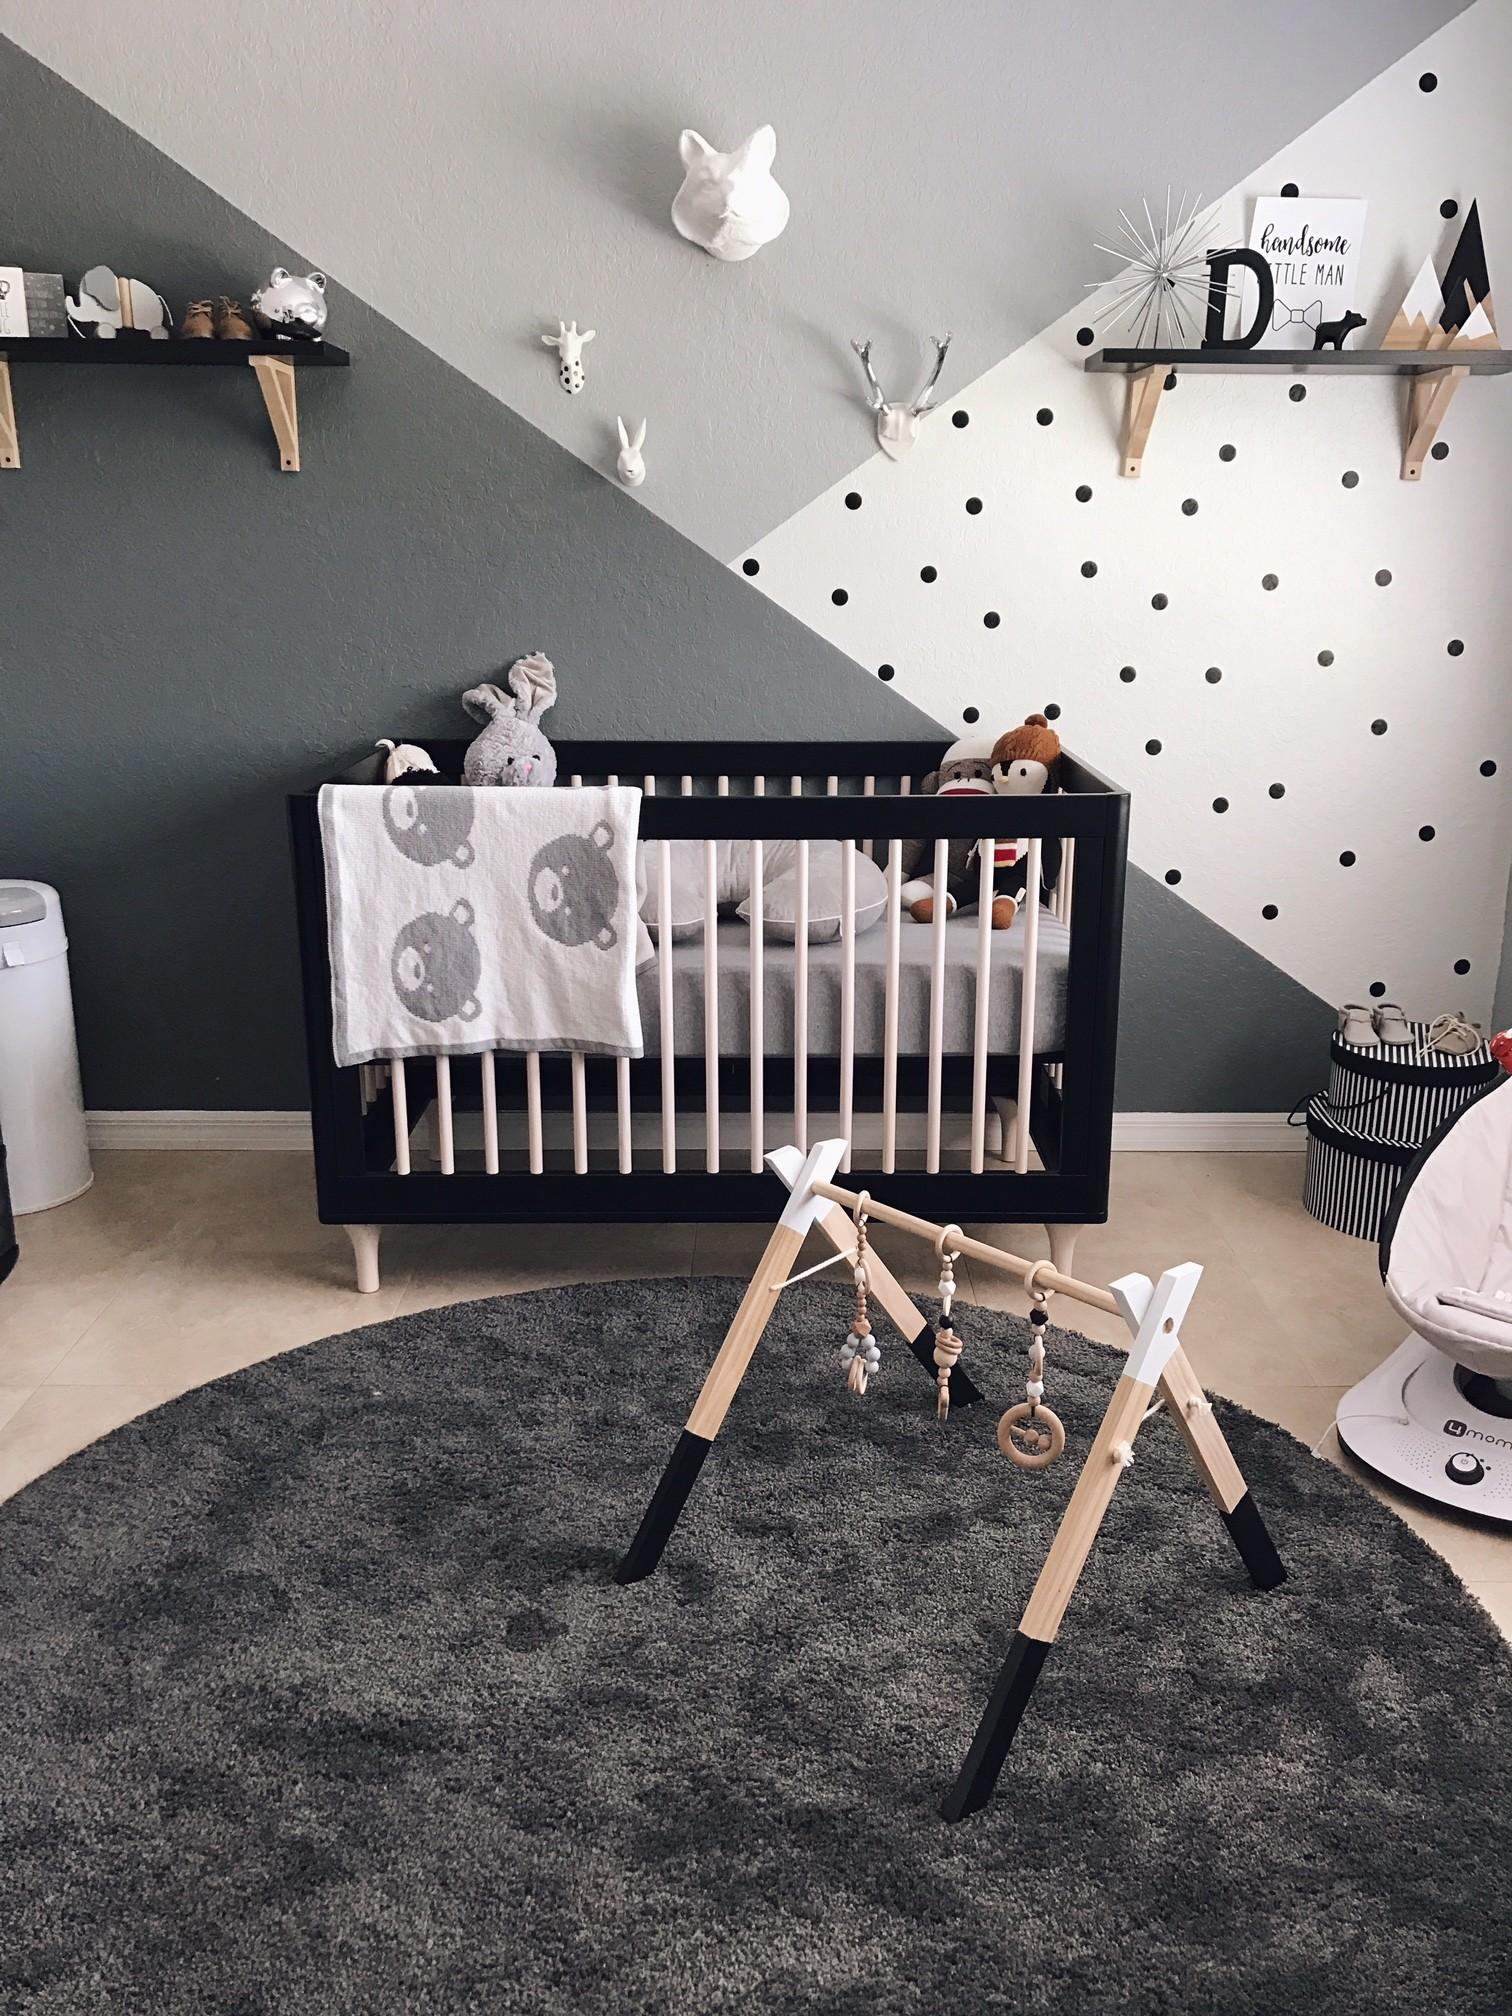 Which These Nurseries Your Favorite Project Nursery